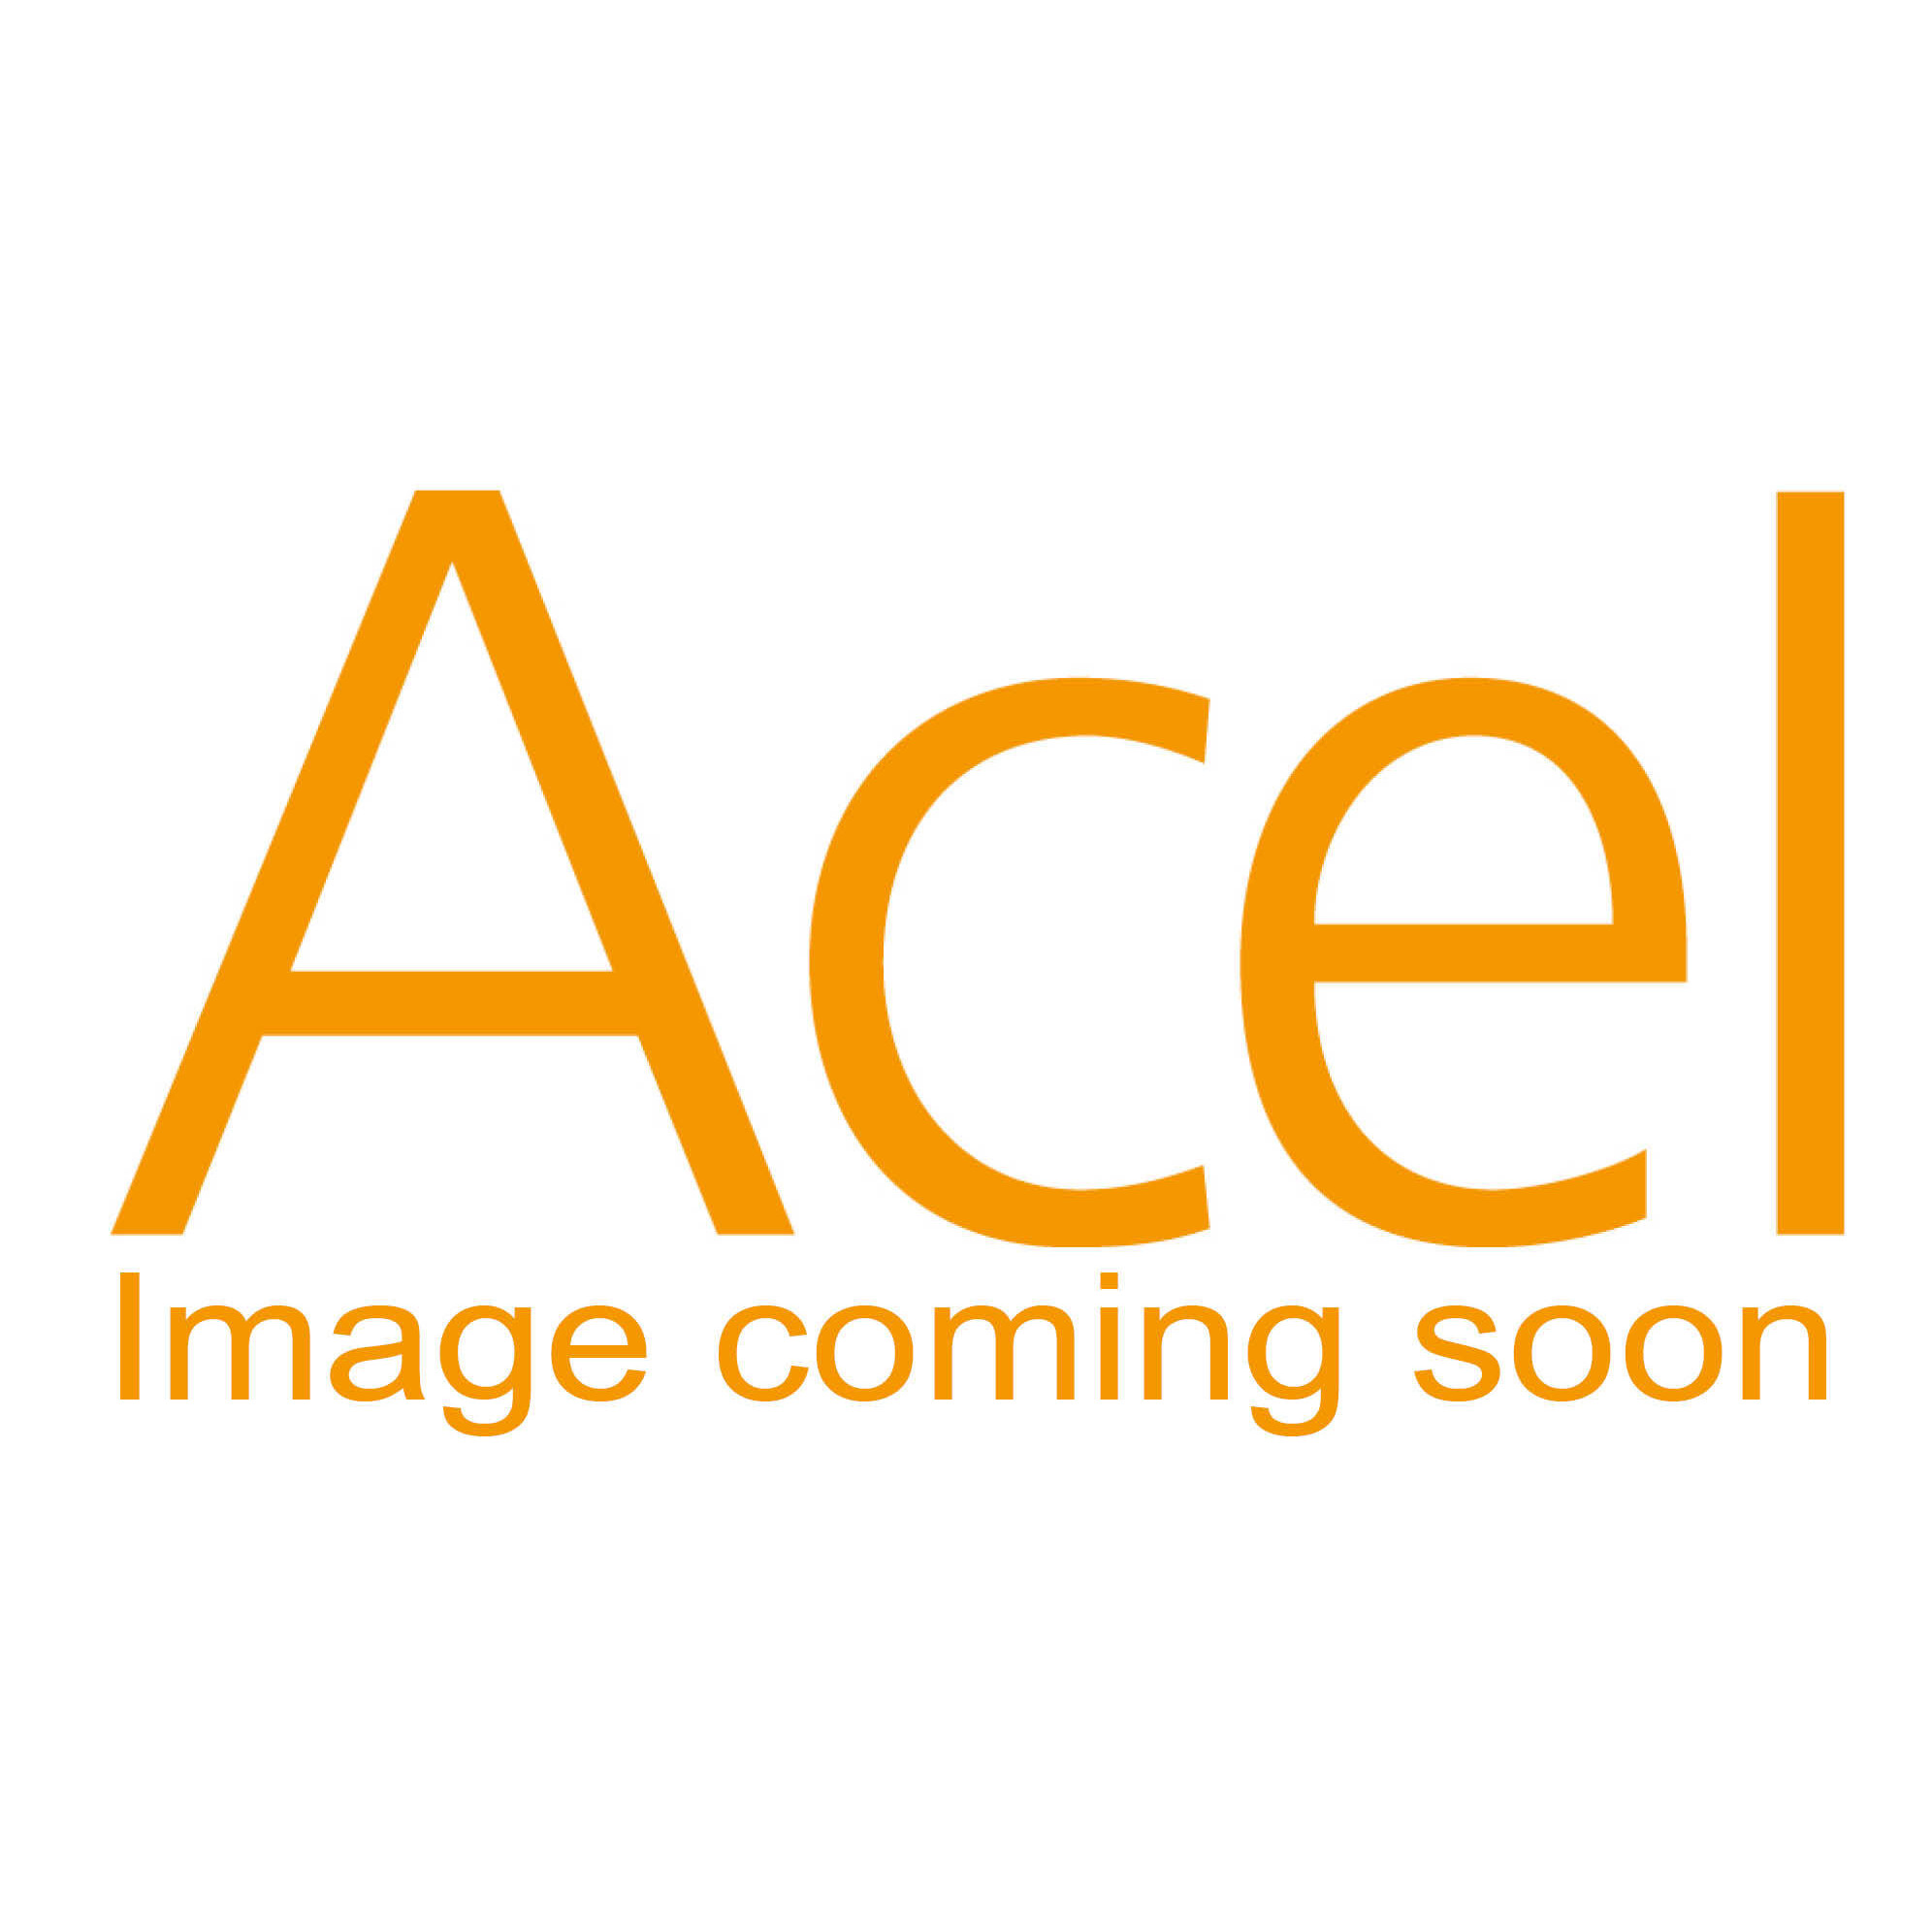 Flexible Self Adhesive Vinyl Labels on a Roll - Periodic inspection label - 130 x 60mm Pk100